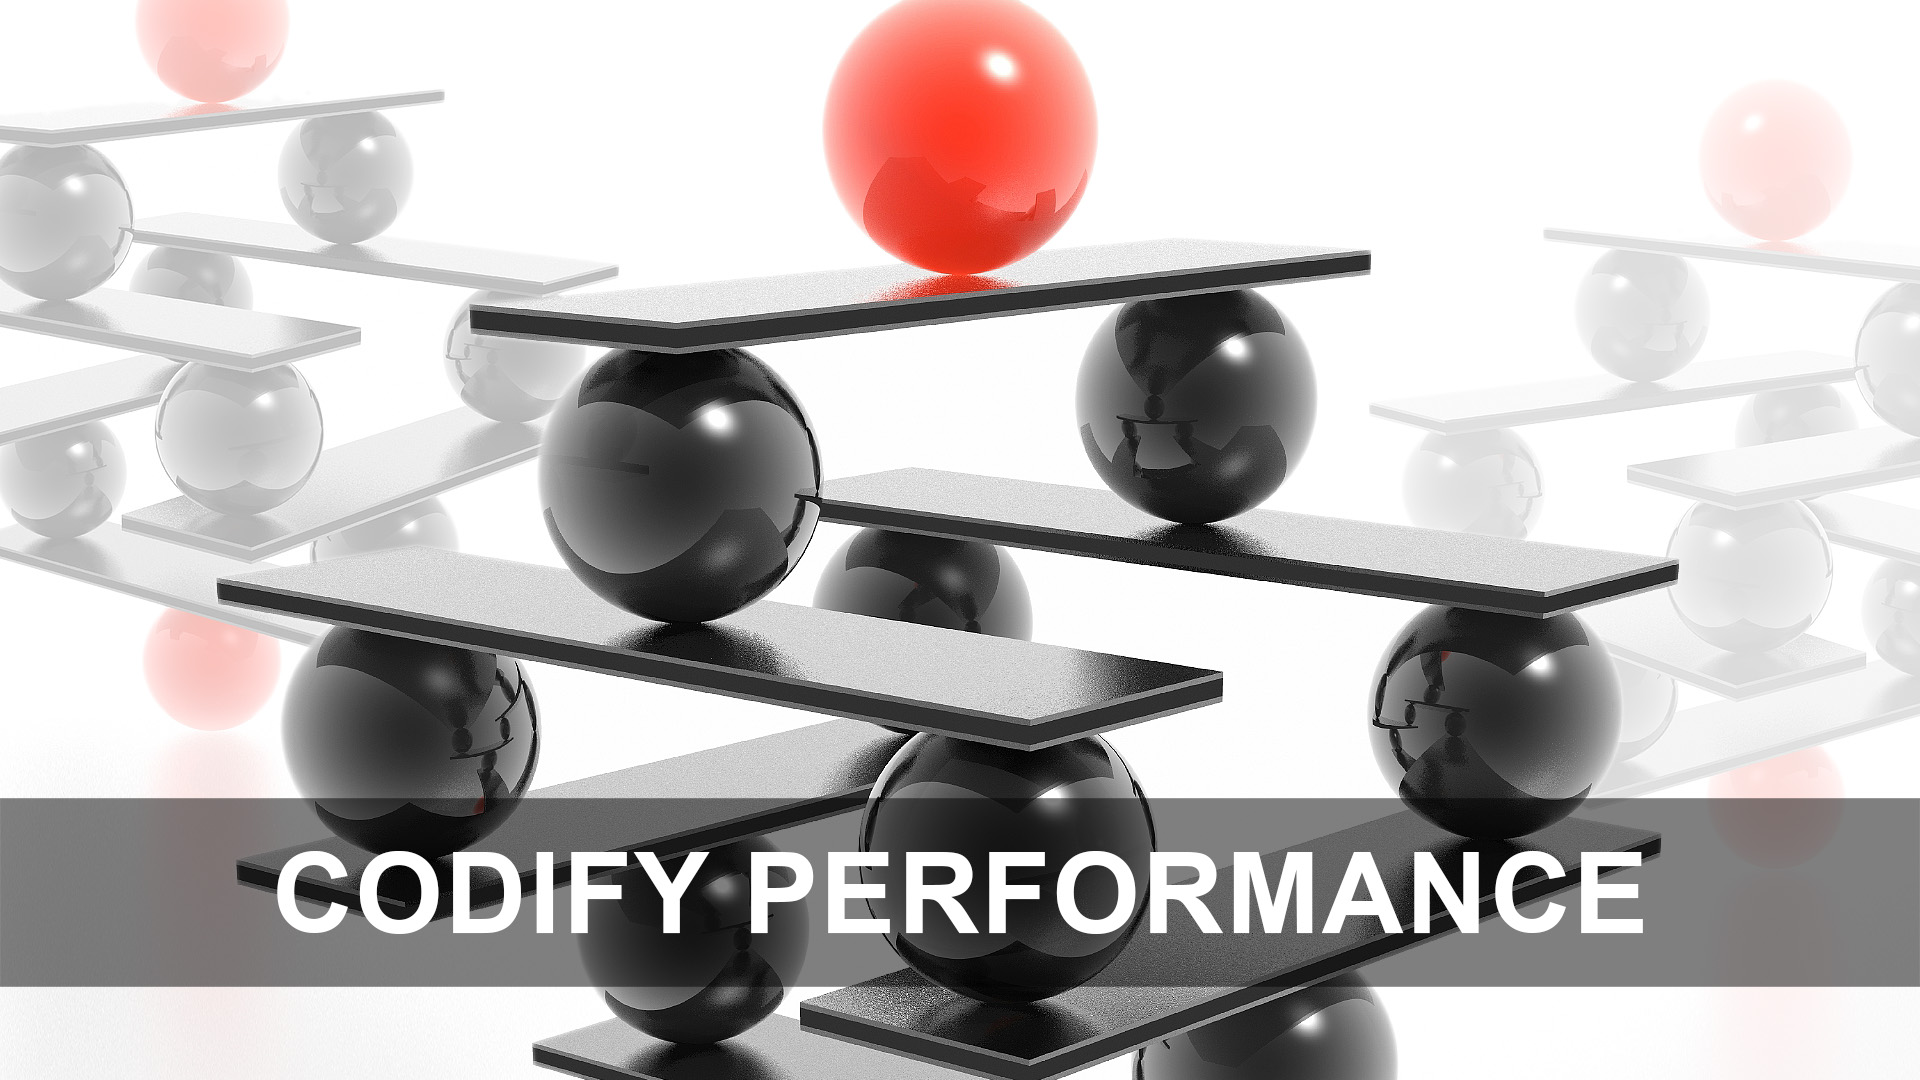 Codify Performance - KAM.jpg